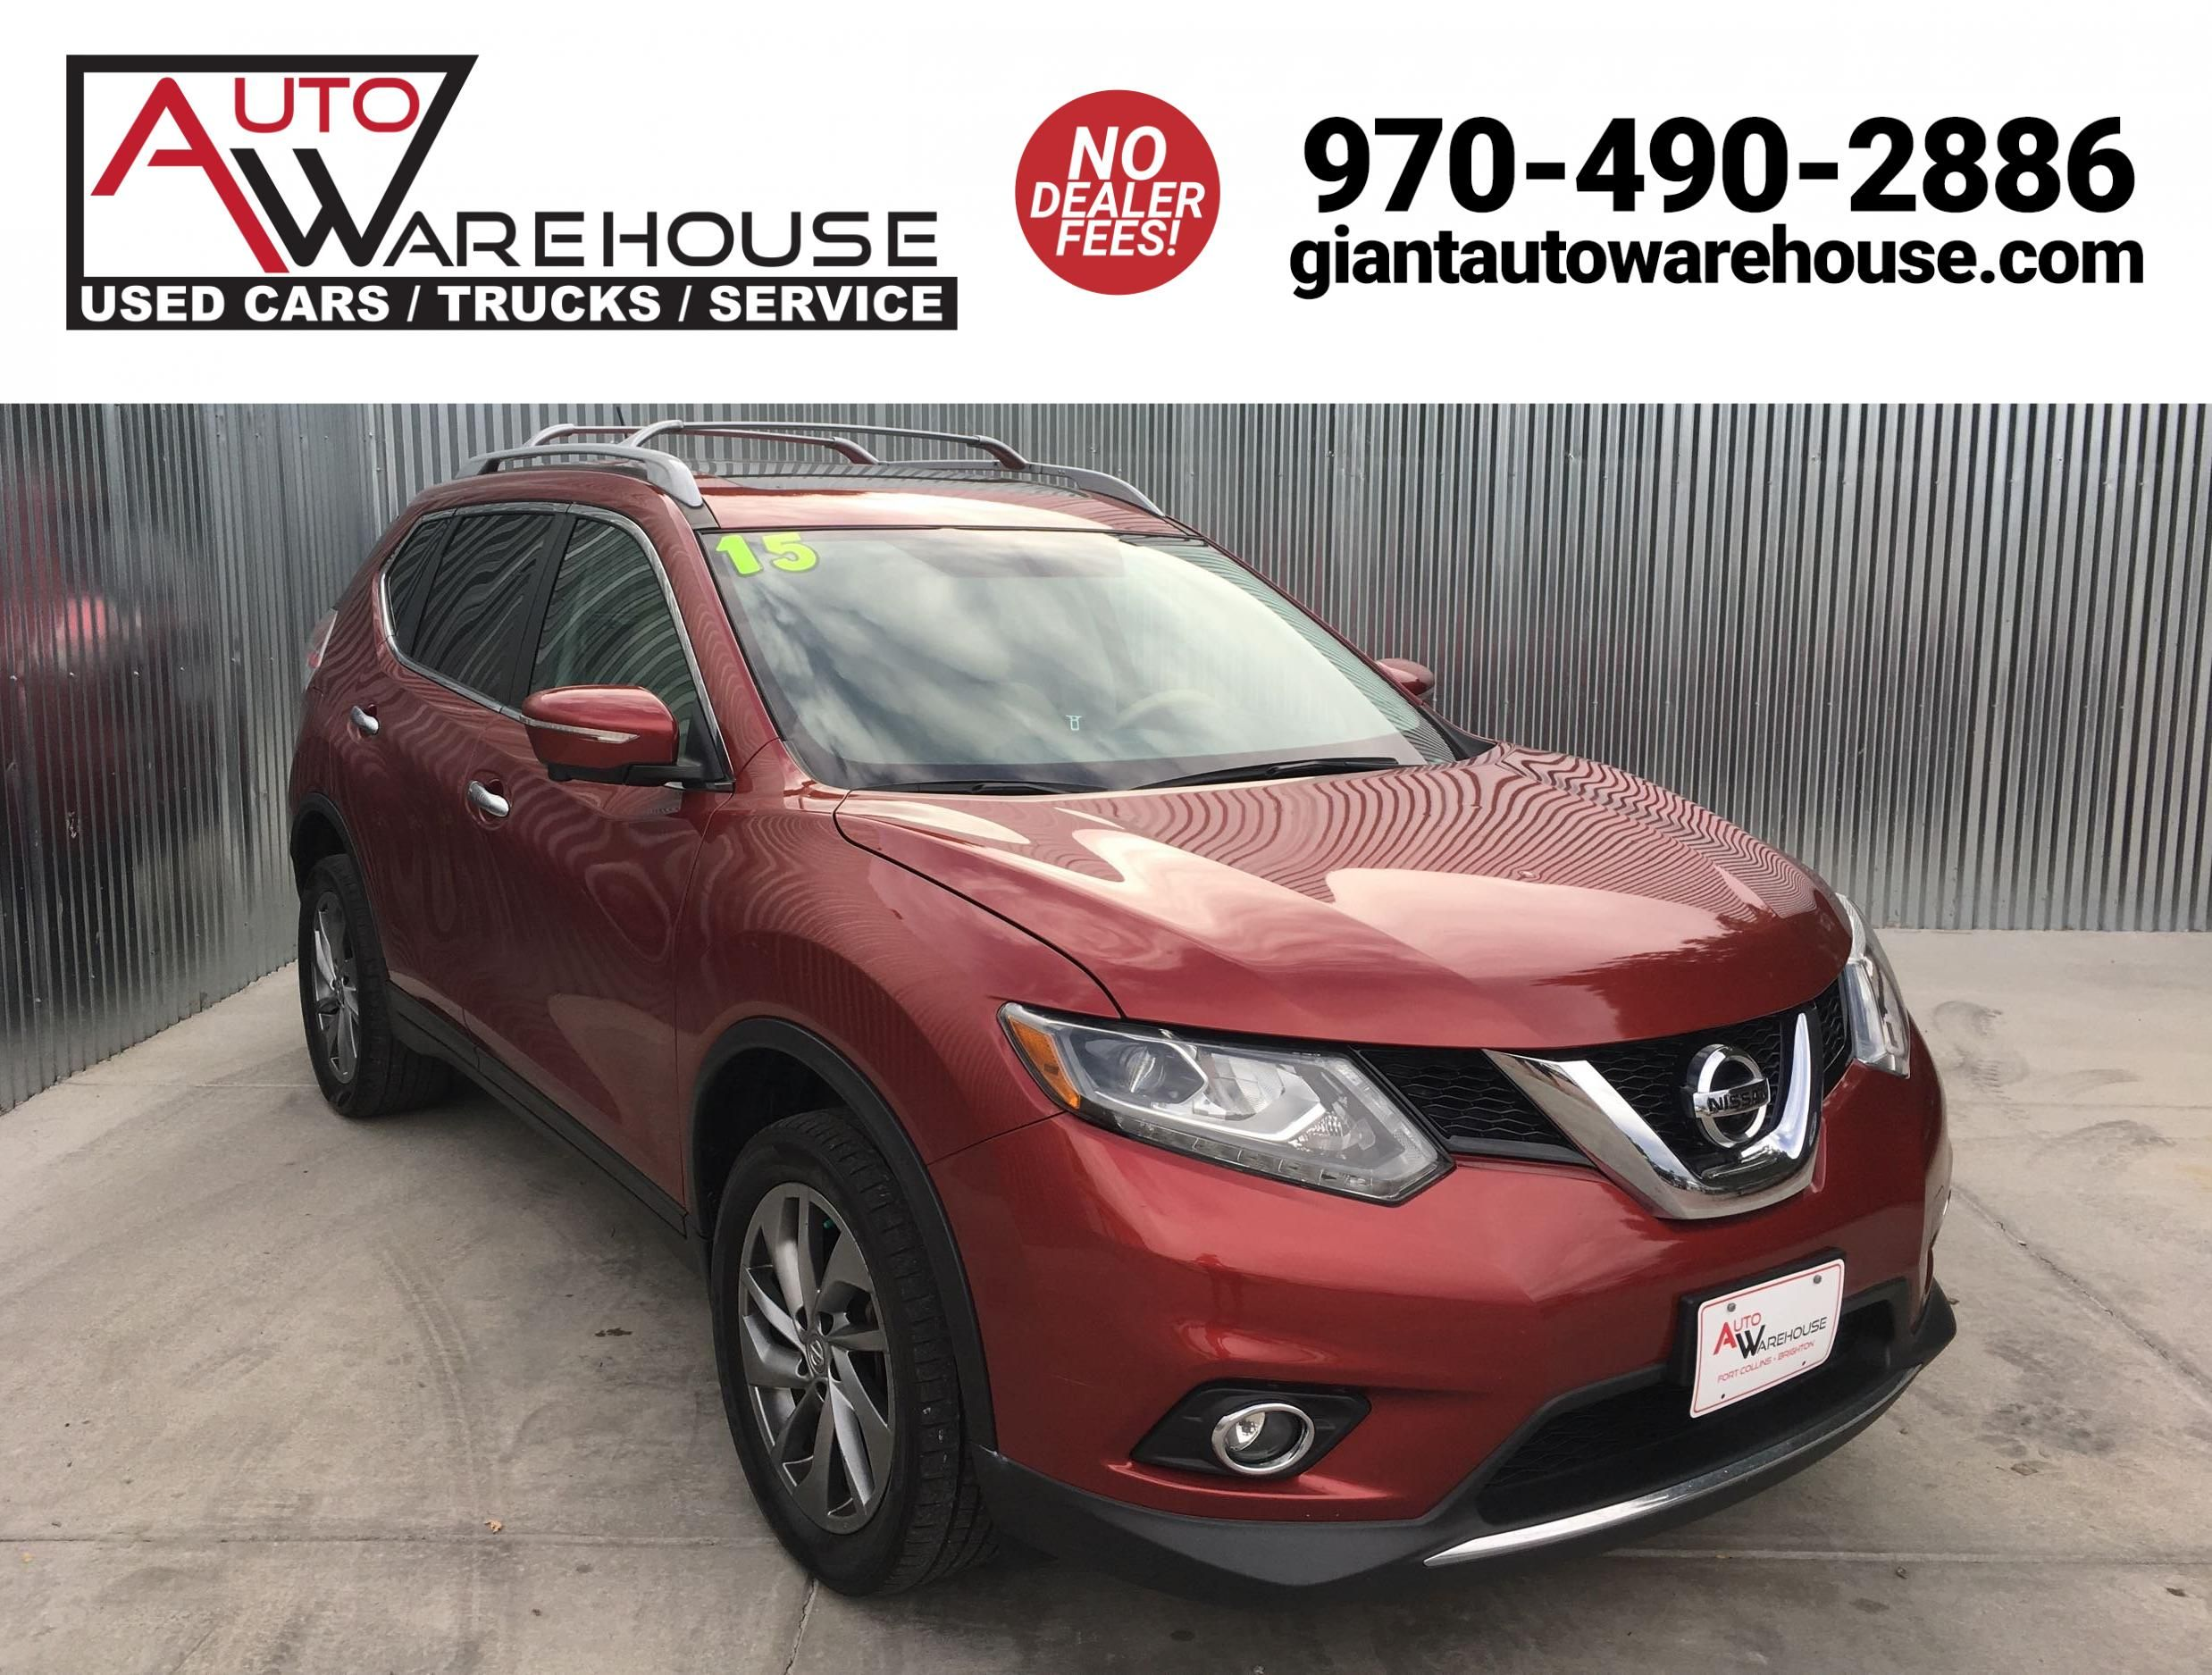 Nissan Rogue Service Manual: Steering wheel turning force is heavy or light